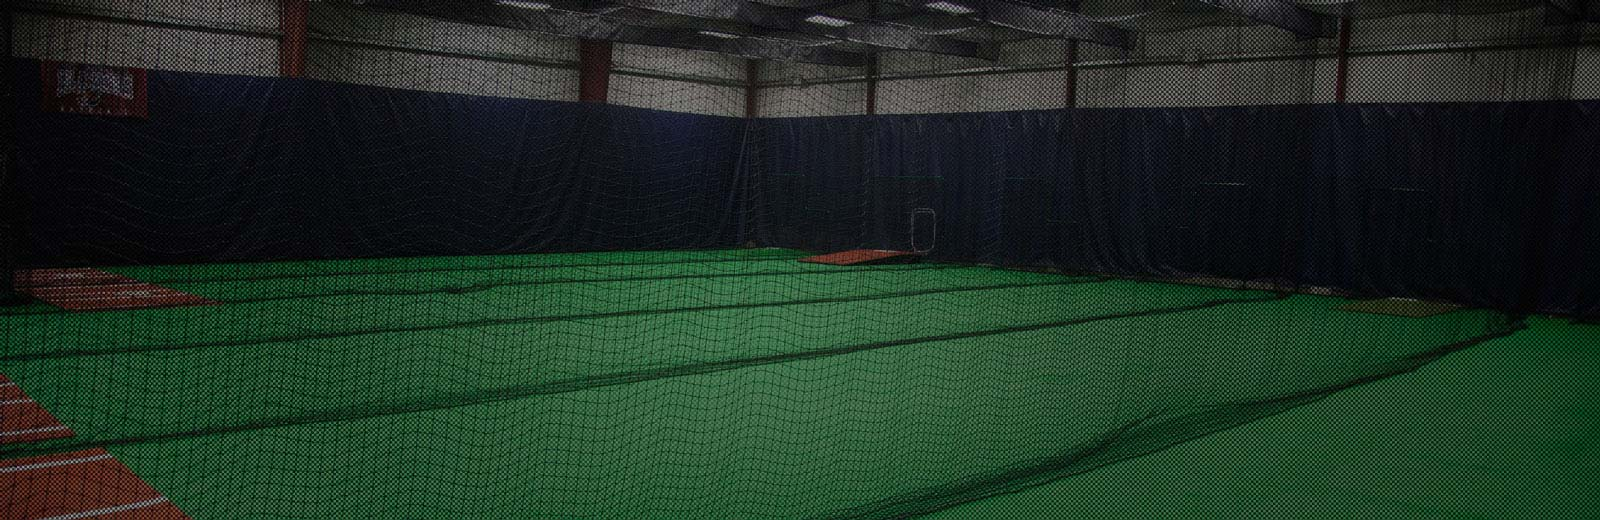 Indoor Batting Cages for Baseball & Softball